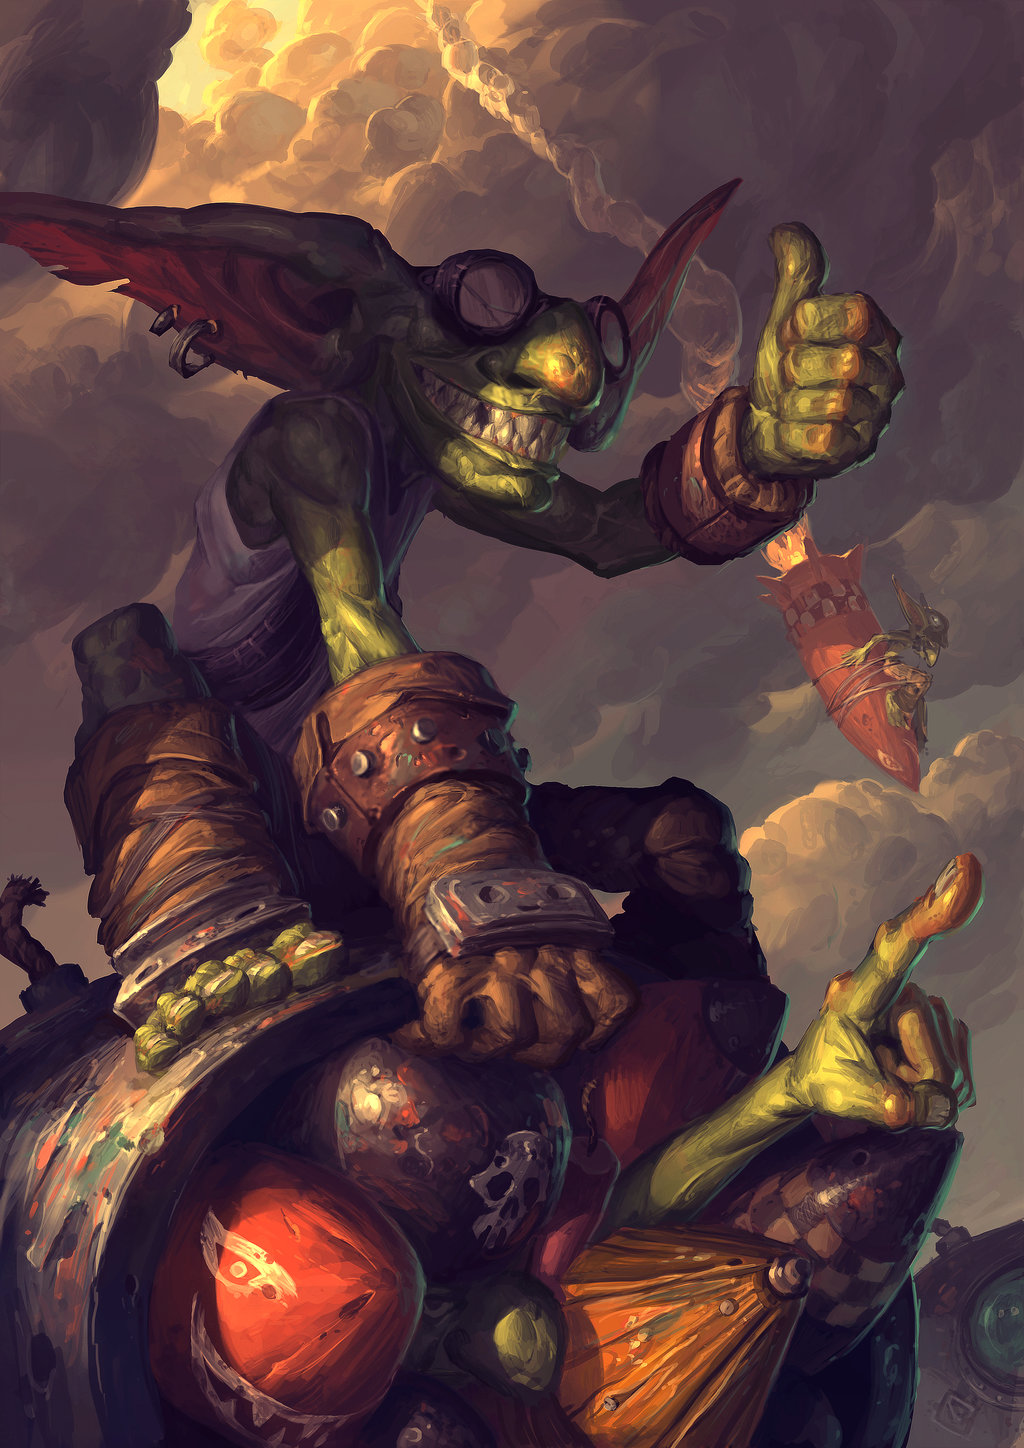 goblin_vs_gnomes_entry_by_edcid-d89t72f